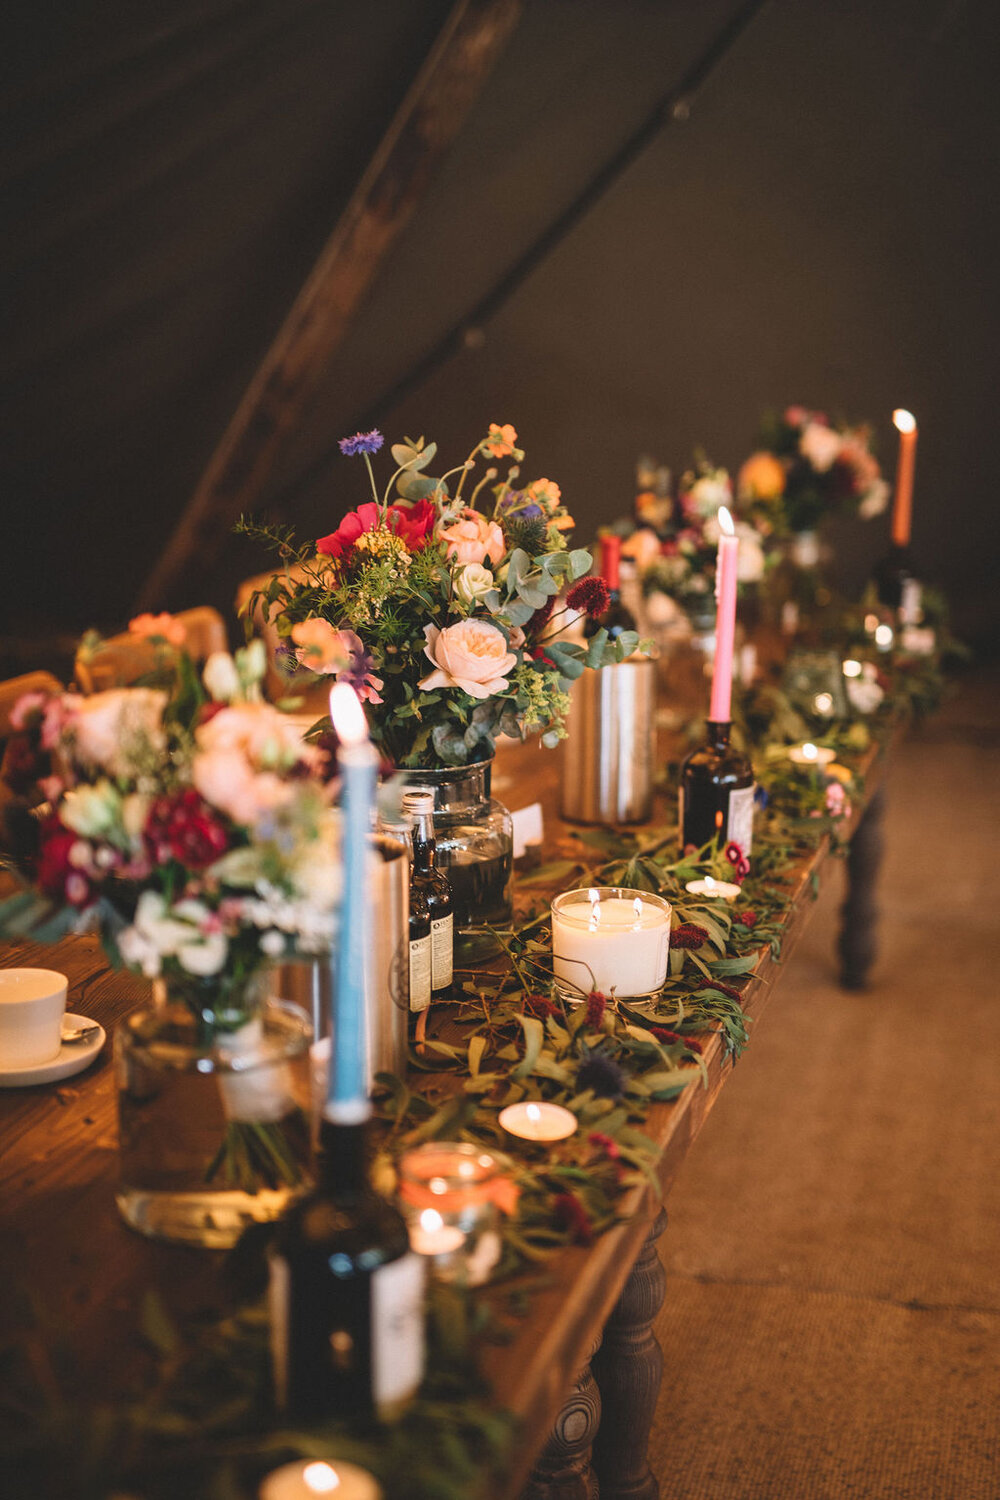 21_Charlotte-Joe-PapaKåta-Tipi-Tent-Wedding-North-Yorkshire-Lumiere-Photography-Table-Setting.jpg